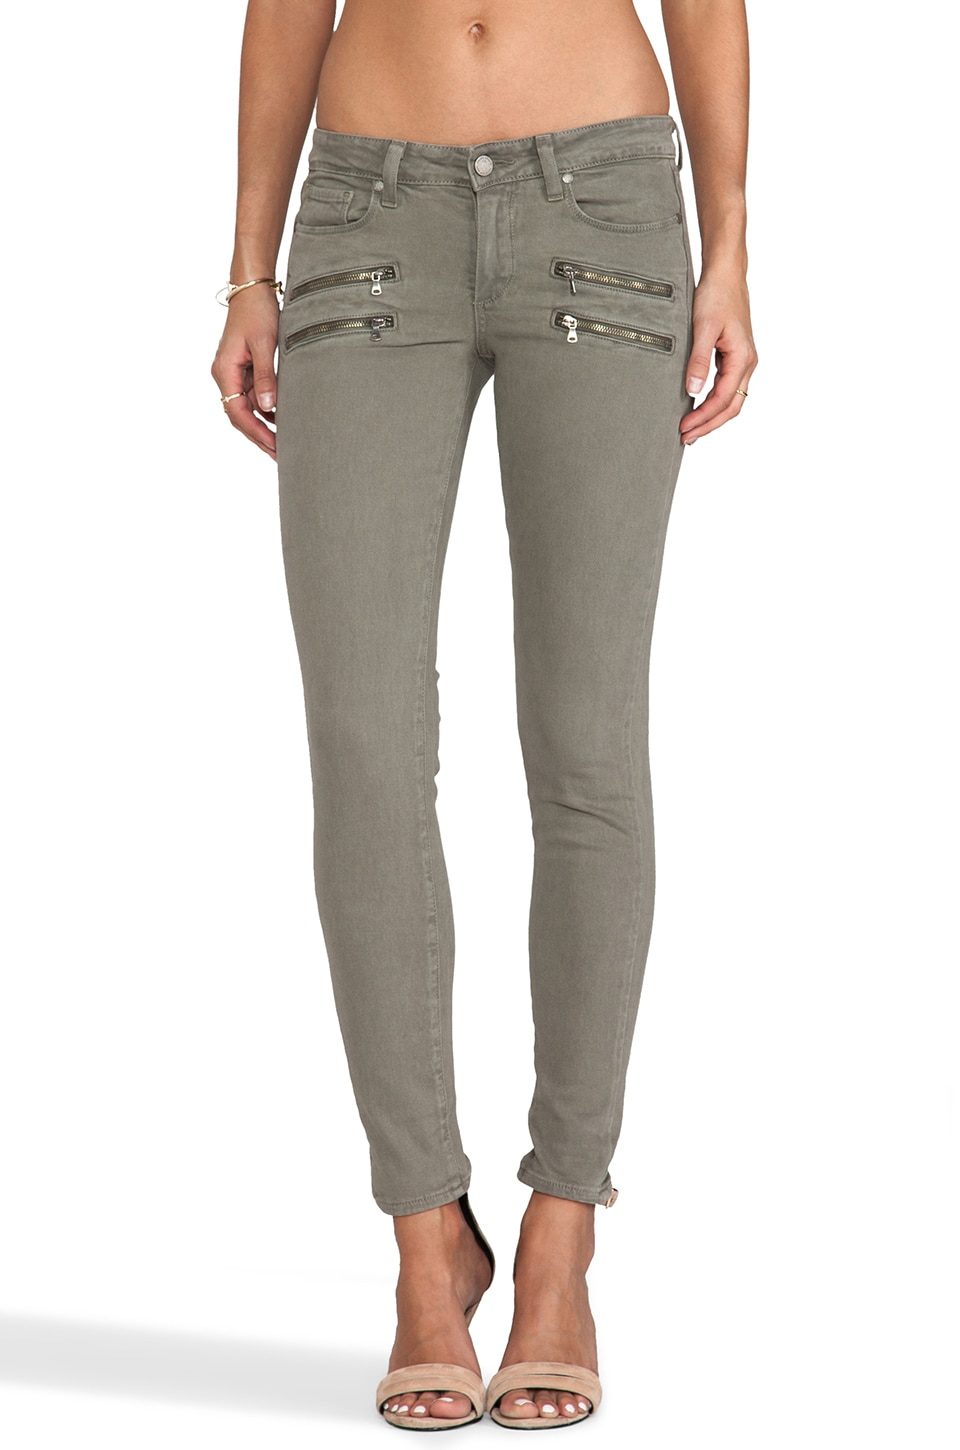 Paige Denim Edgemont Ultra Skinny with Zippers in Fatigue Green